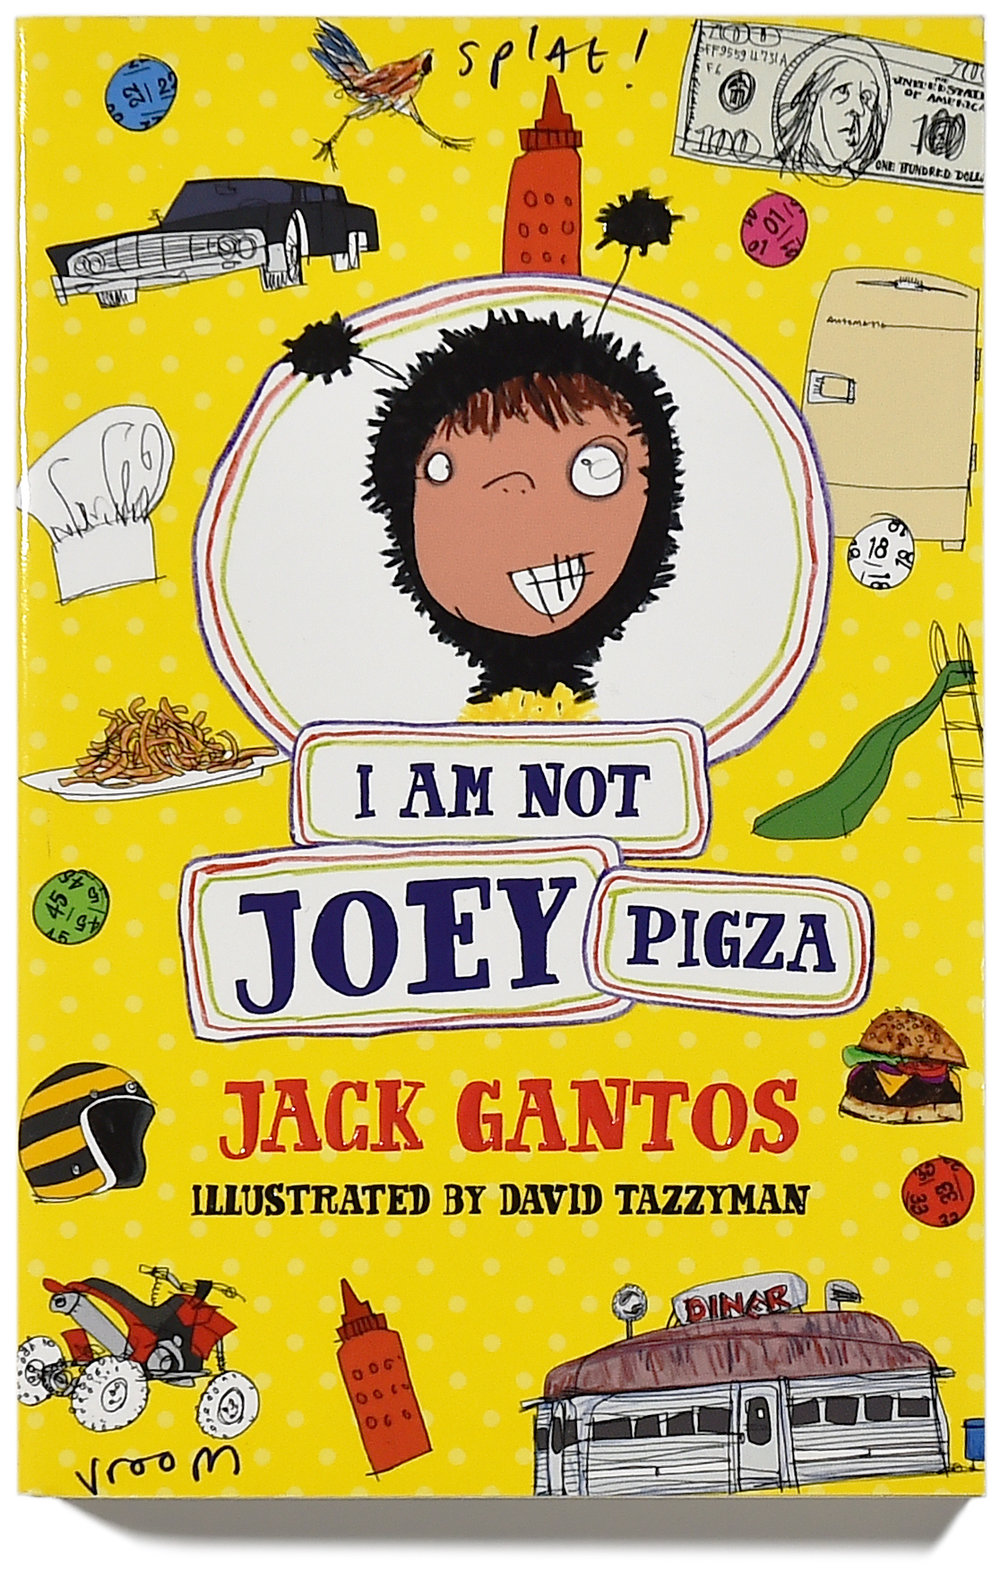 I-Am-Not-Joey-Pigza-cover.FIN.jpg